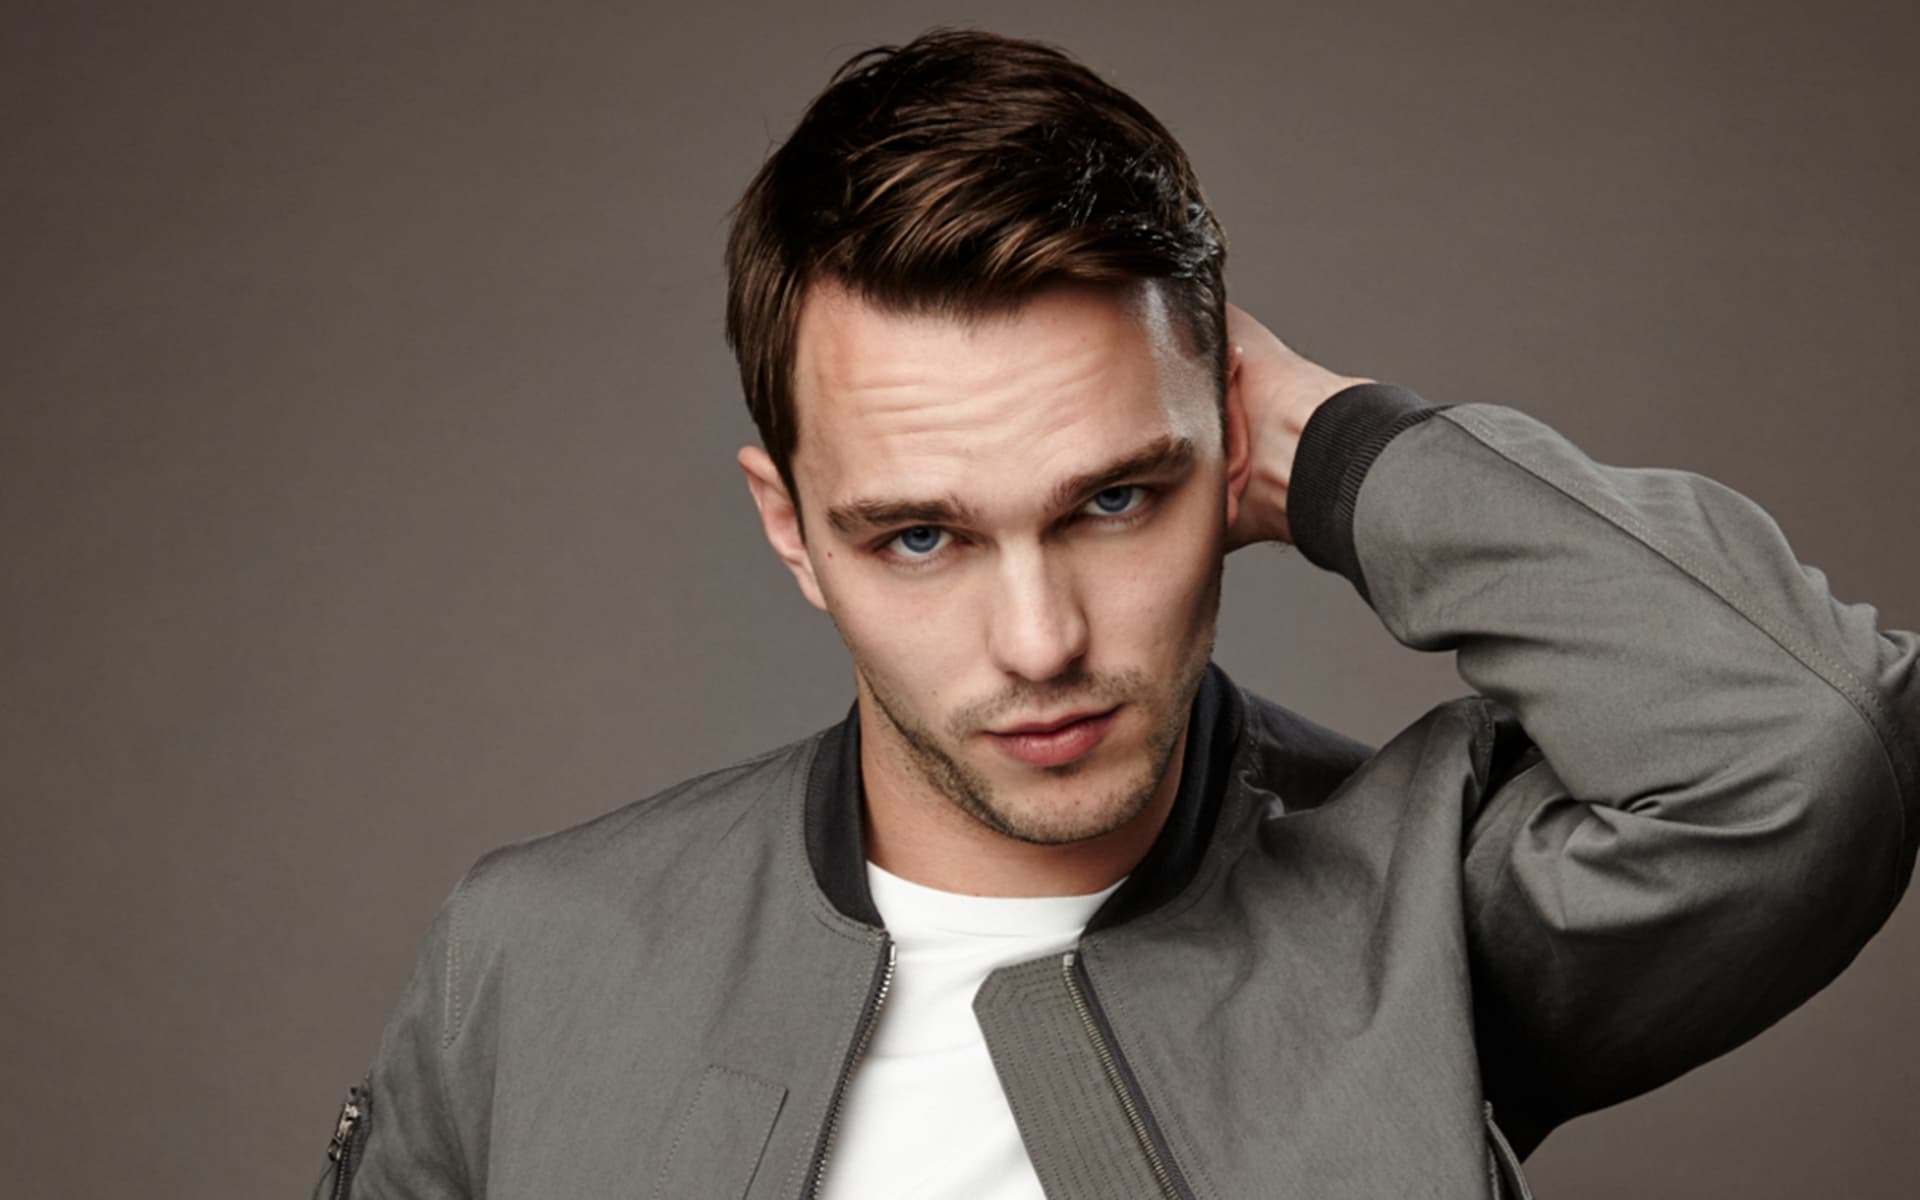 Nicholas Hoult Wallpapers and Background Images   stmednet 1920x1200